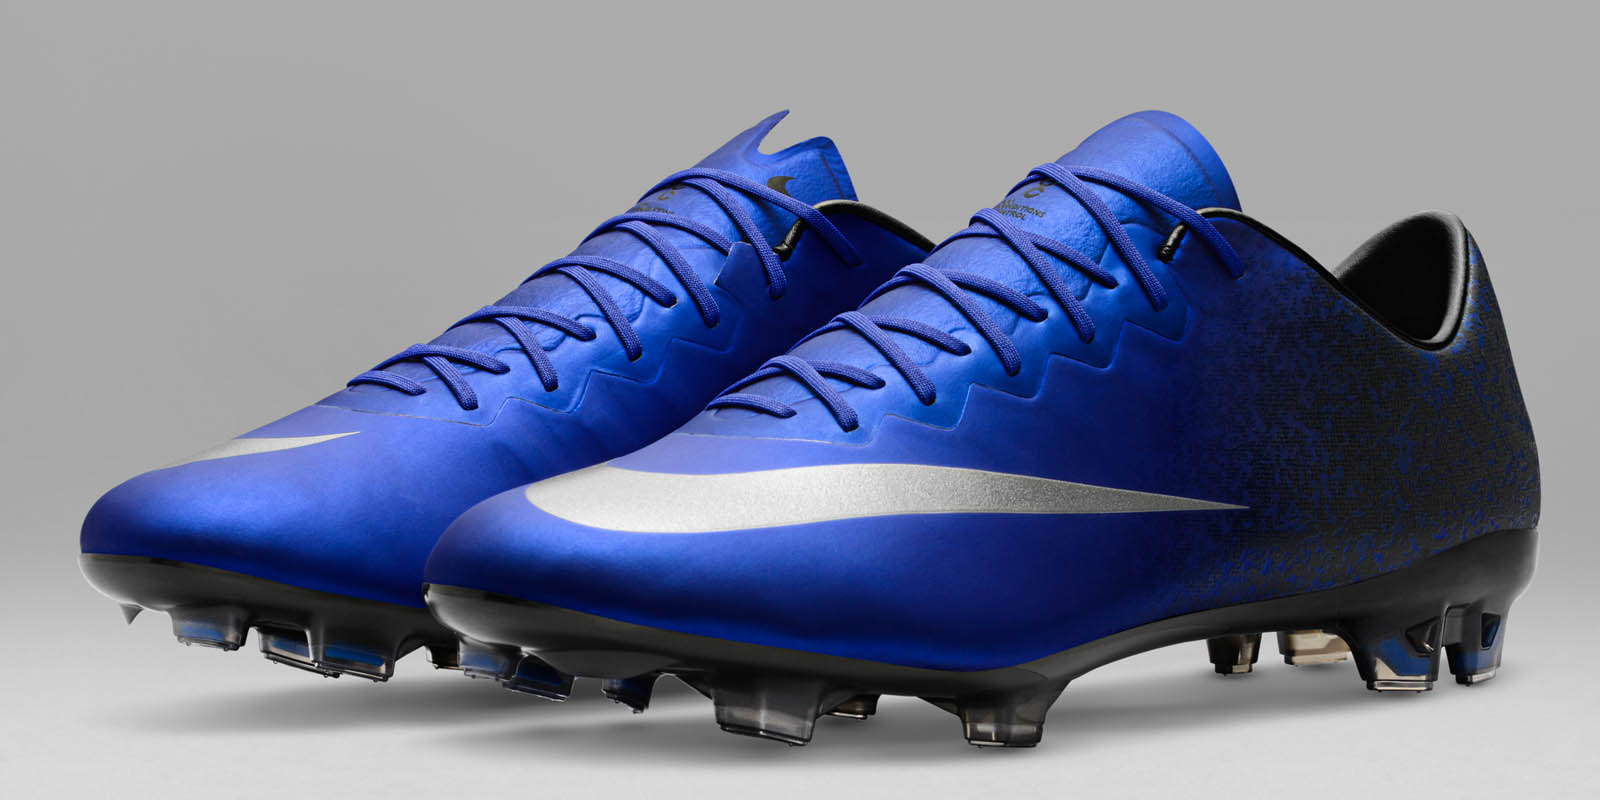 mercurial nike blue